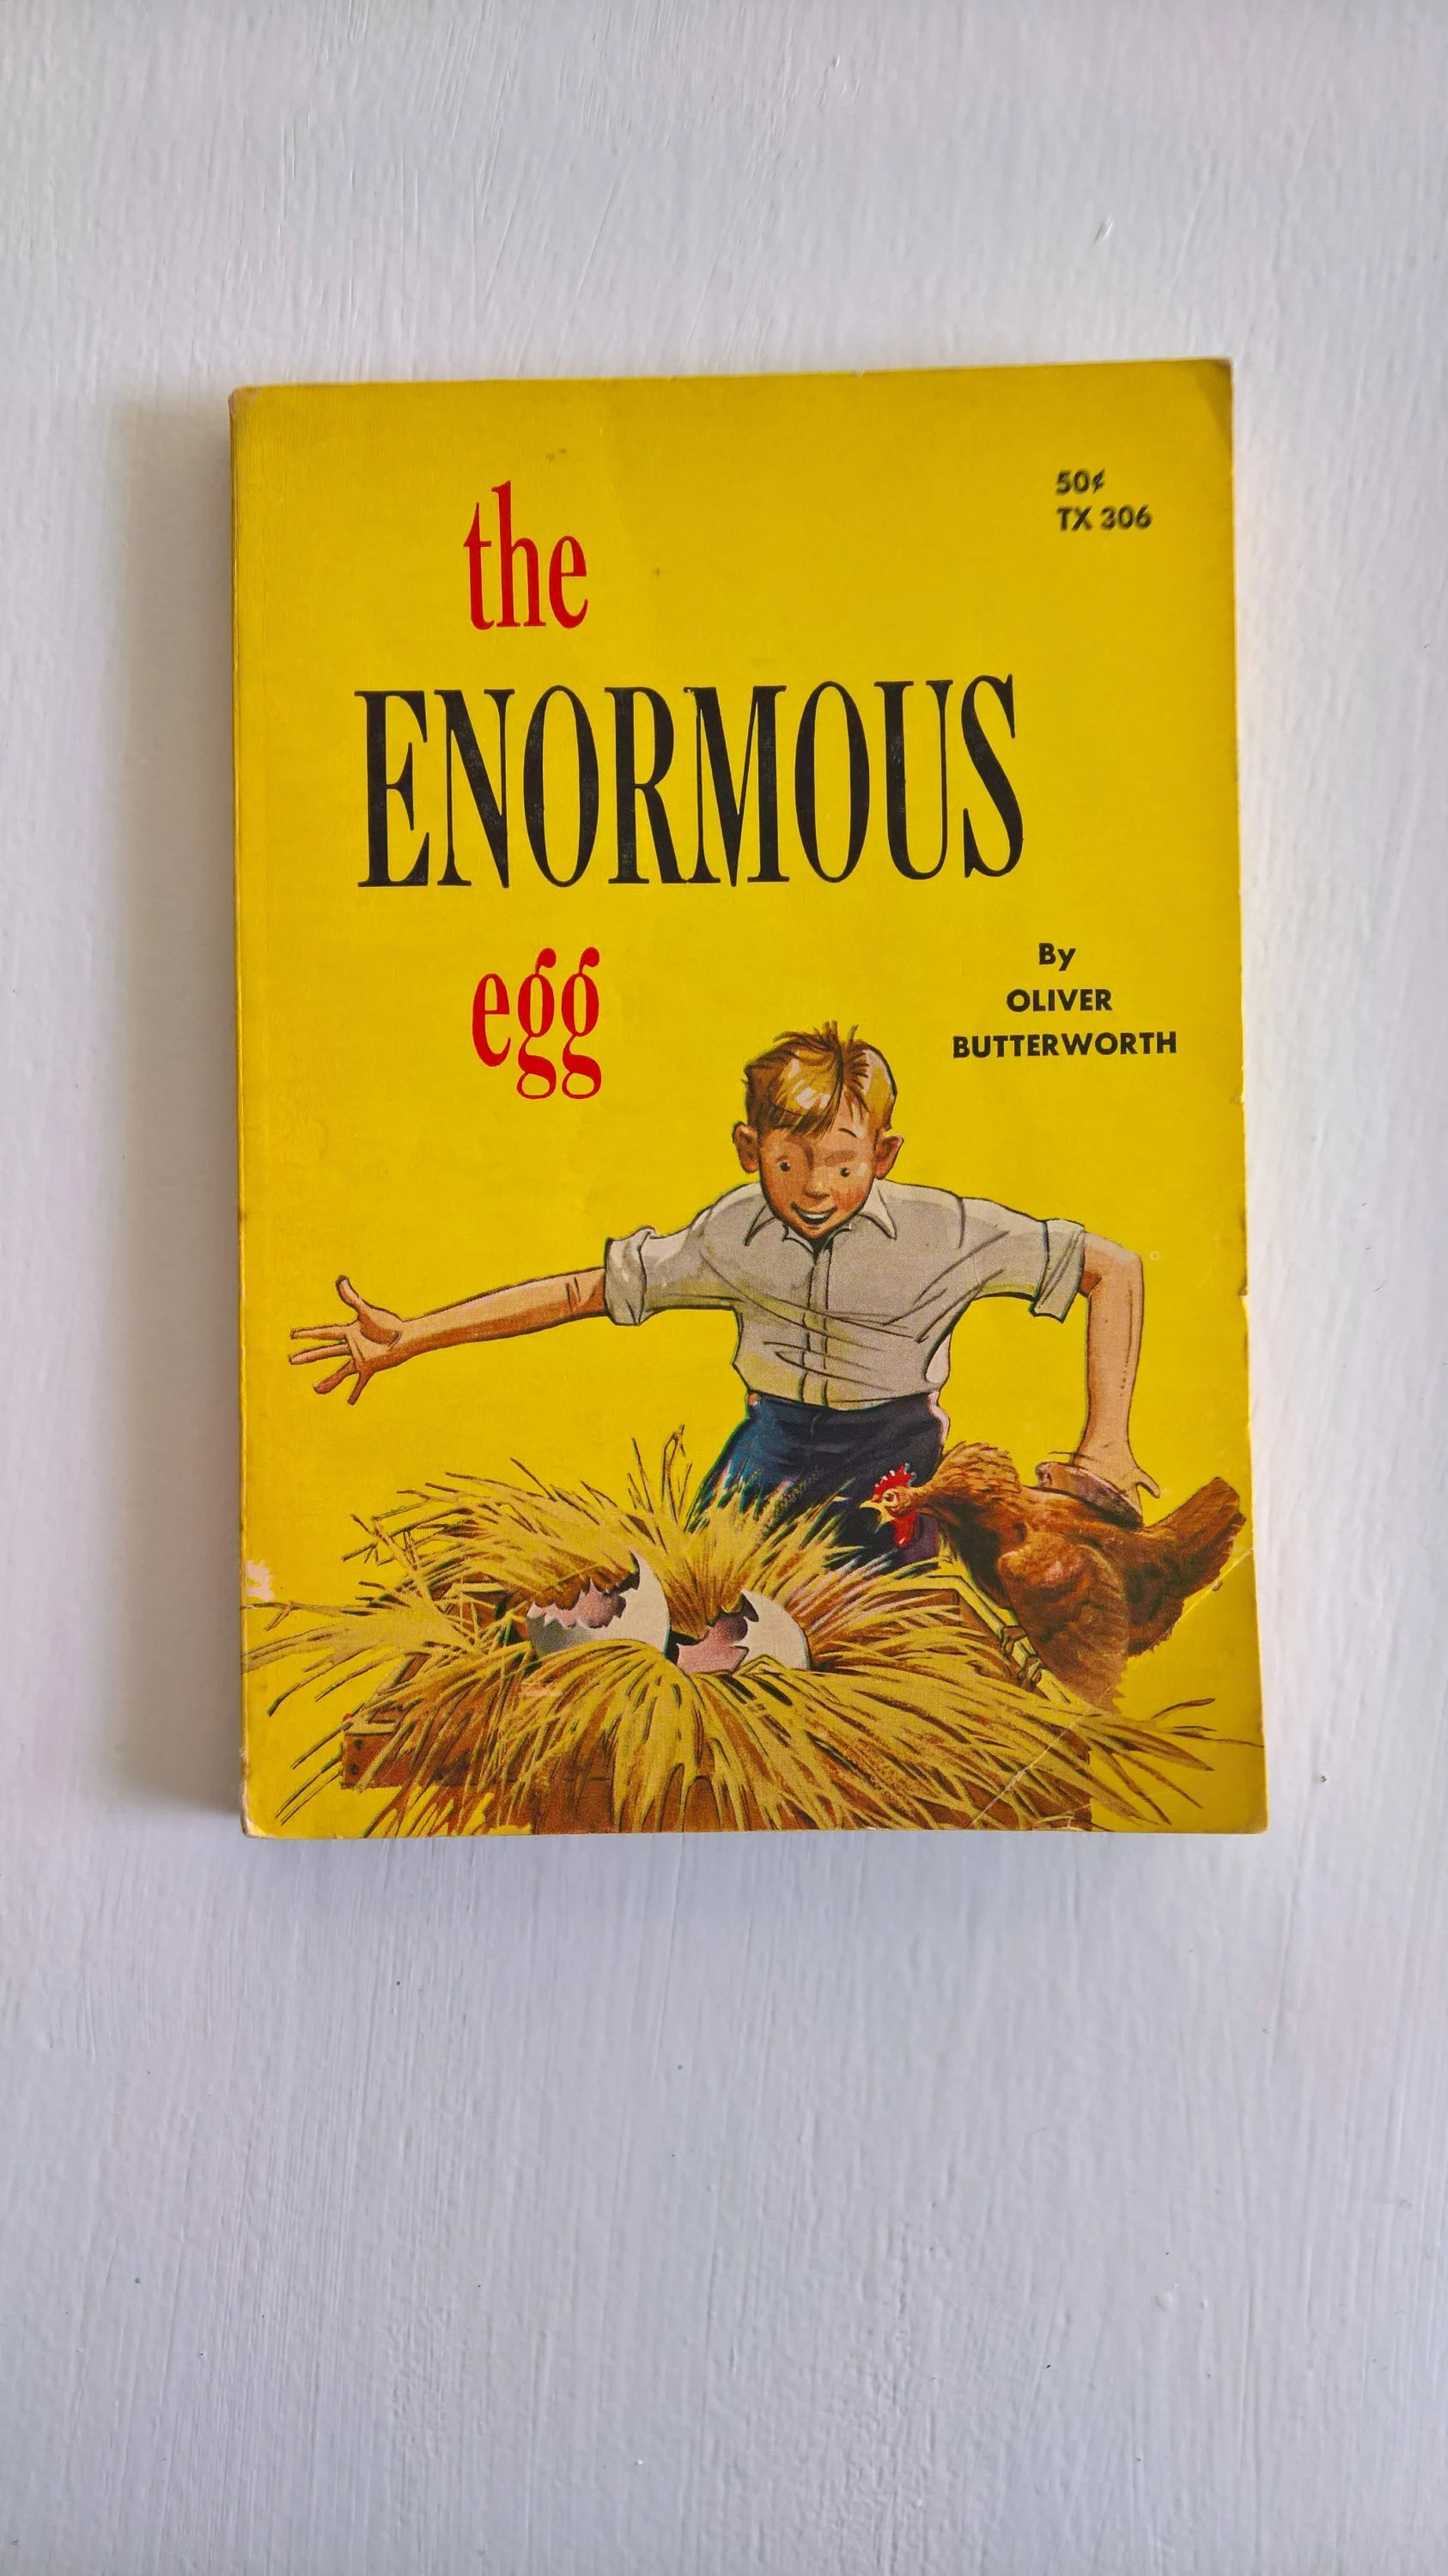 Badezimmer Set Novel The Enormous Egg By Oliver Butterworth Illustrated By Louis Darling Vintage 1960 S Children S Chapter Book Dinosaur Science Fiction